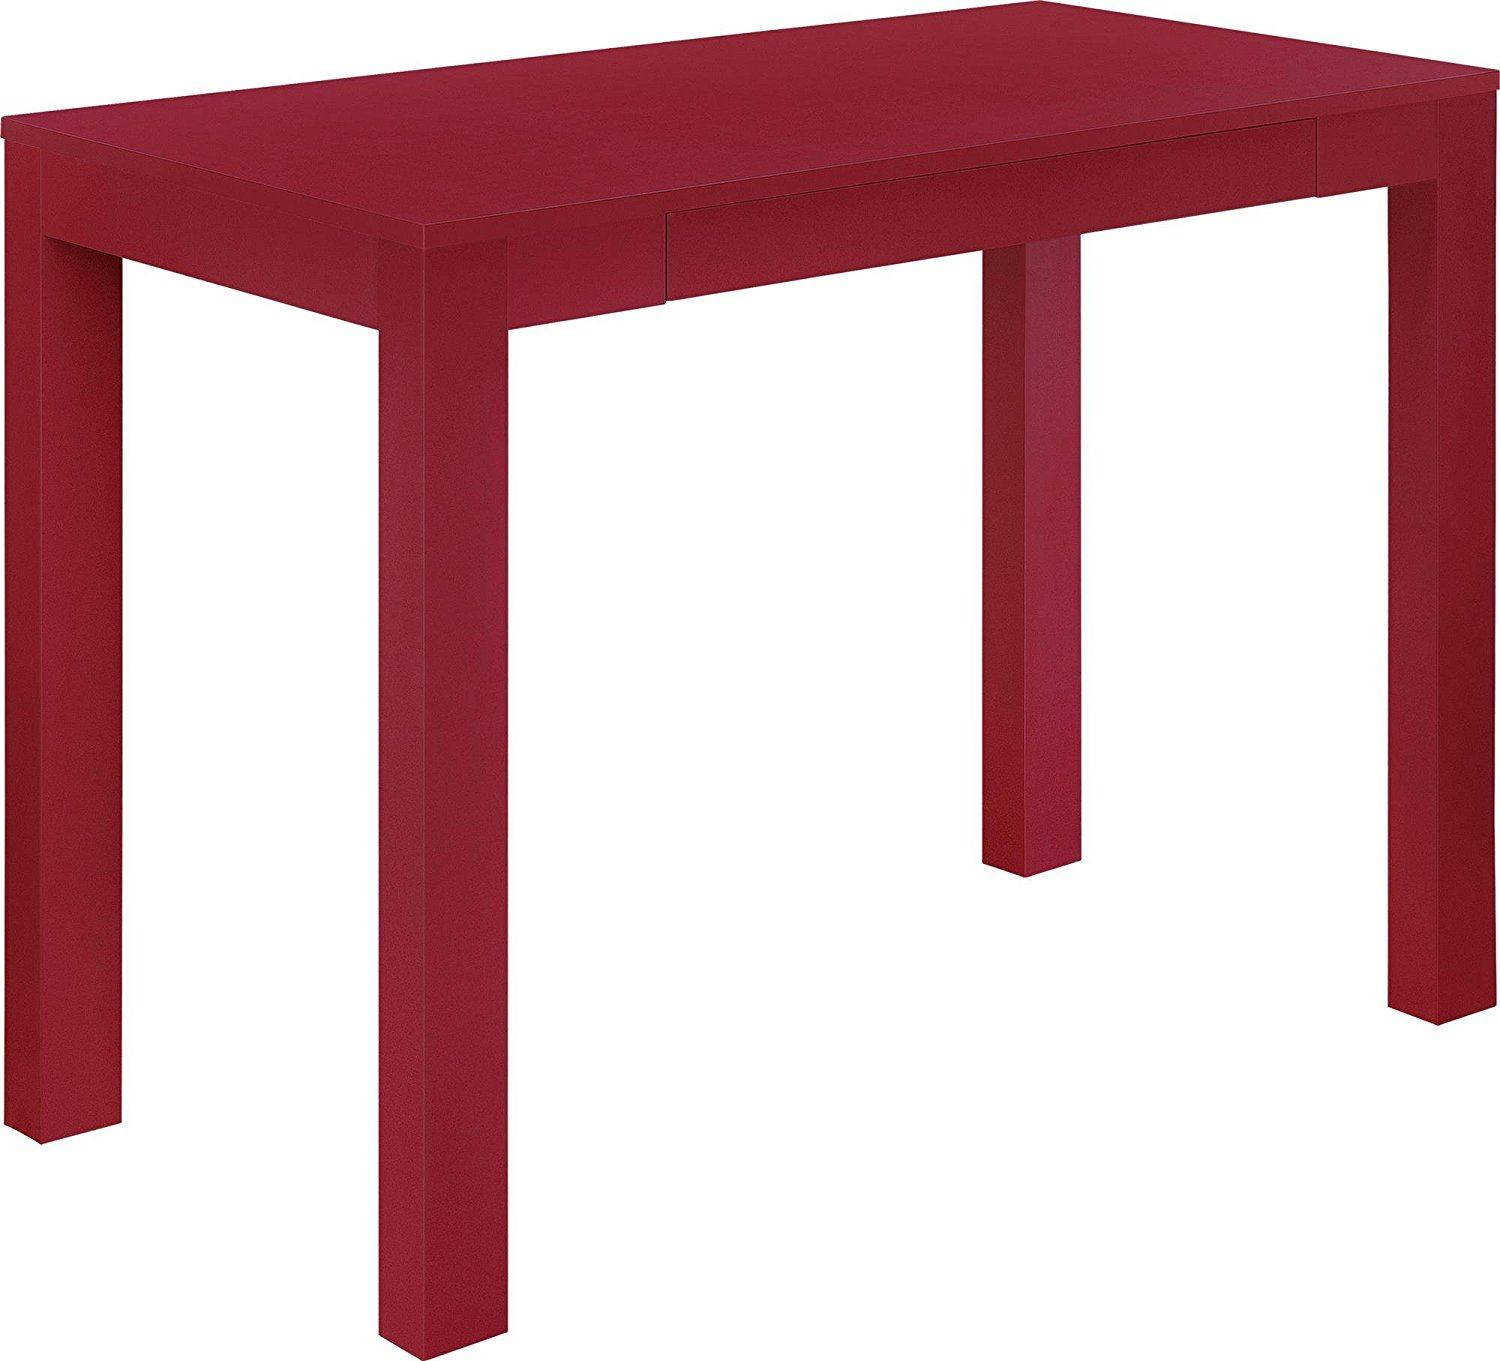 Altra Delilah Parsons Desk With Drawer Red The Painted Console Table